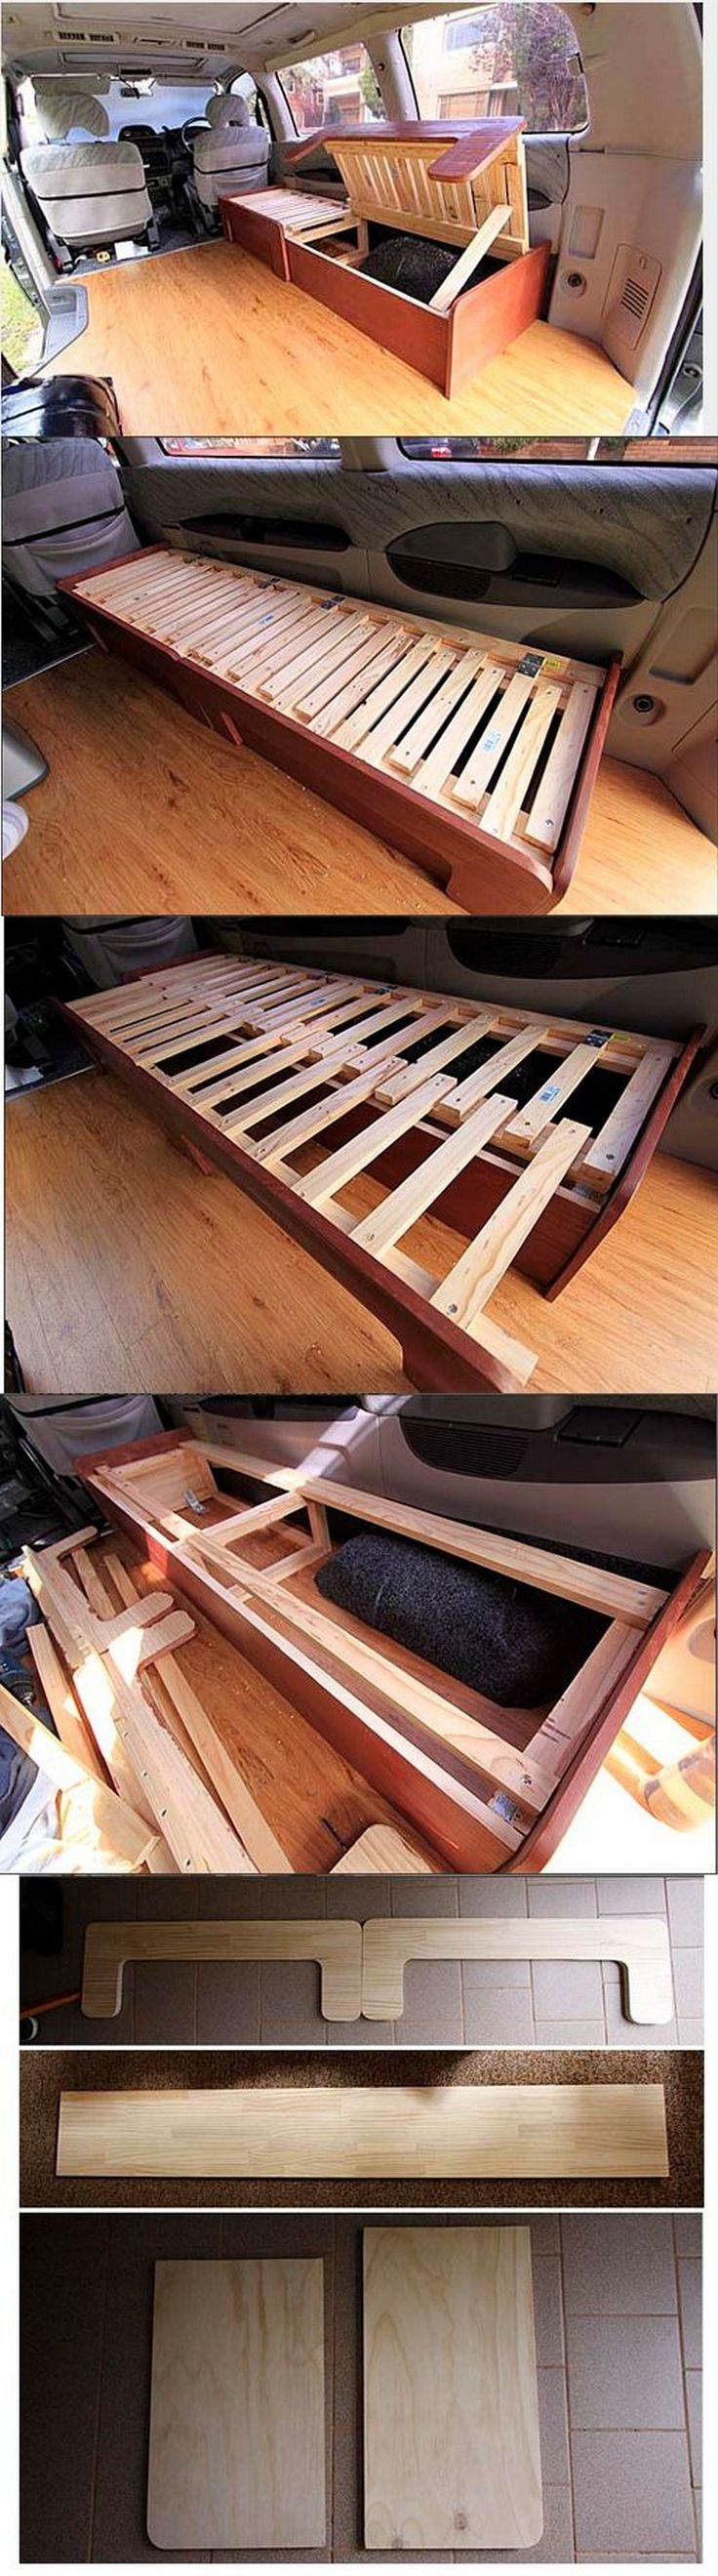 50 Best Hacks And Remodel RV Camper Van (25)